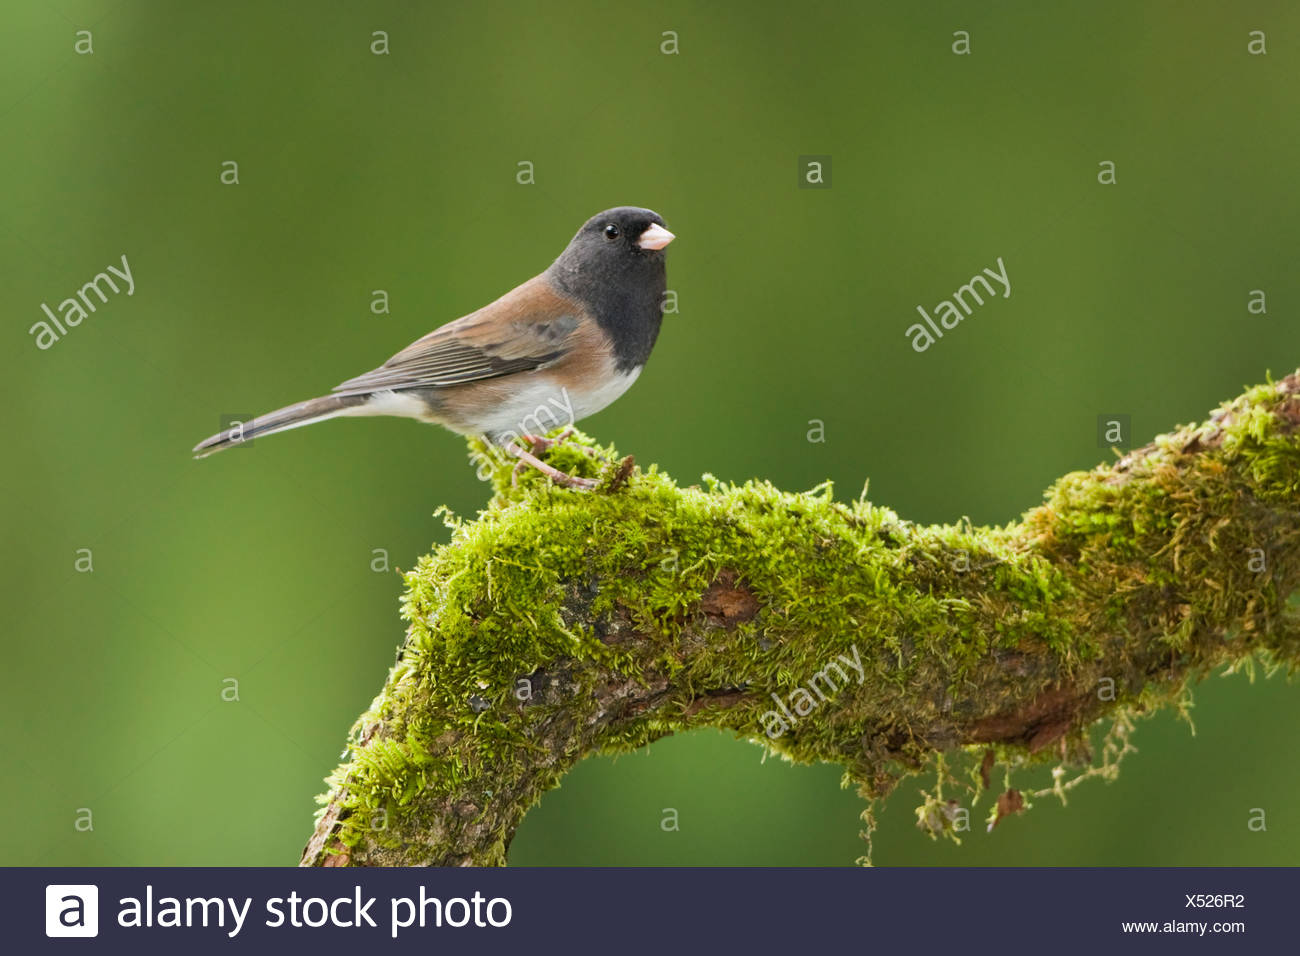 A Dark-eyed junco (Junco hyemalis) perches on a mossy branch in Victoria, Vancouver Island, British Columbia, Canada - Stock Image